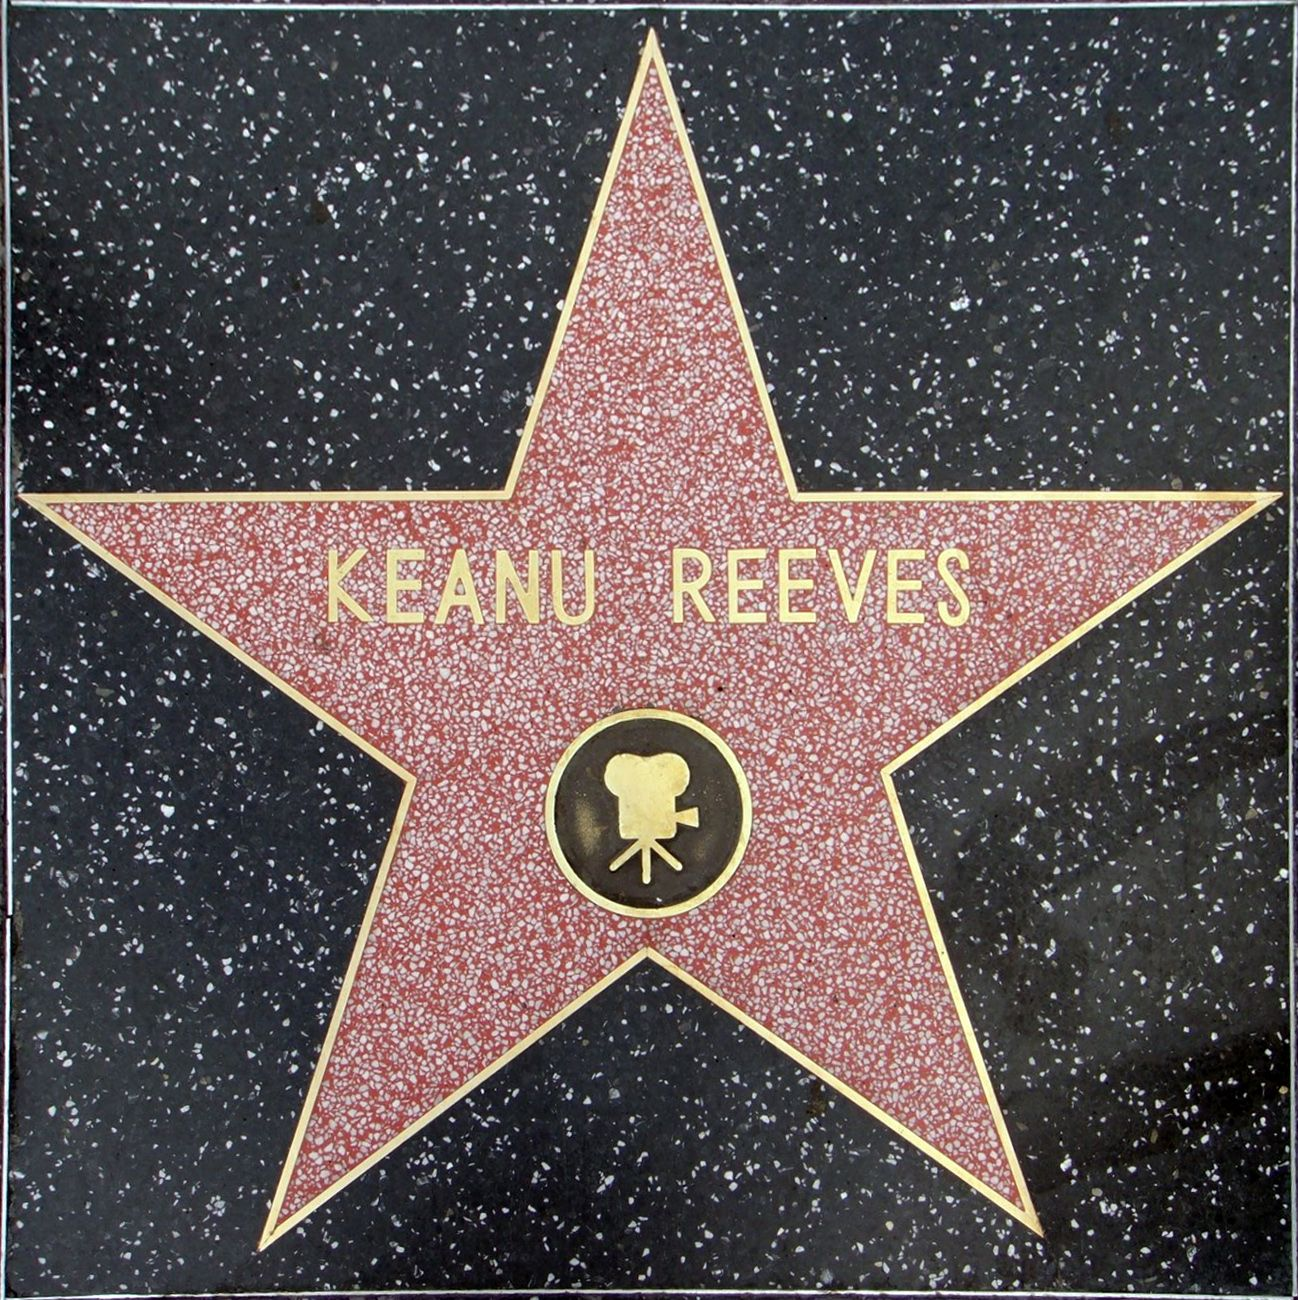 Keanu_Reeves_Star